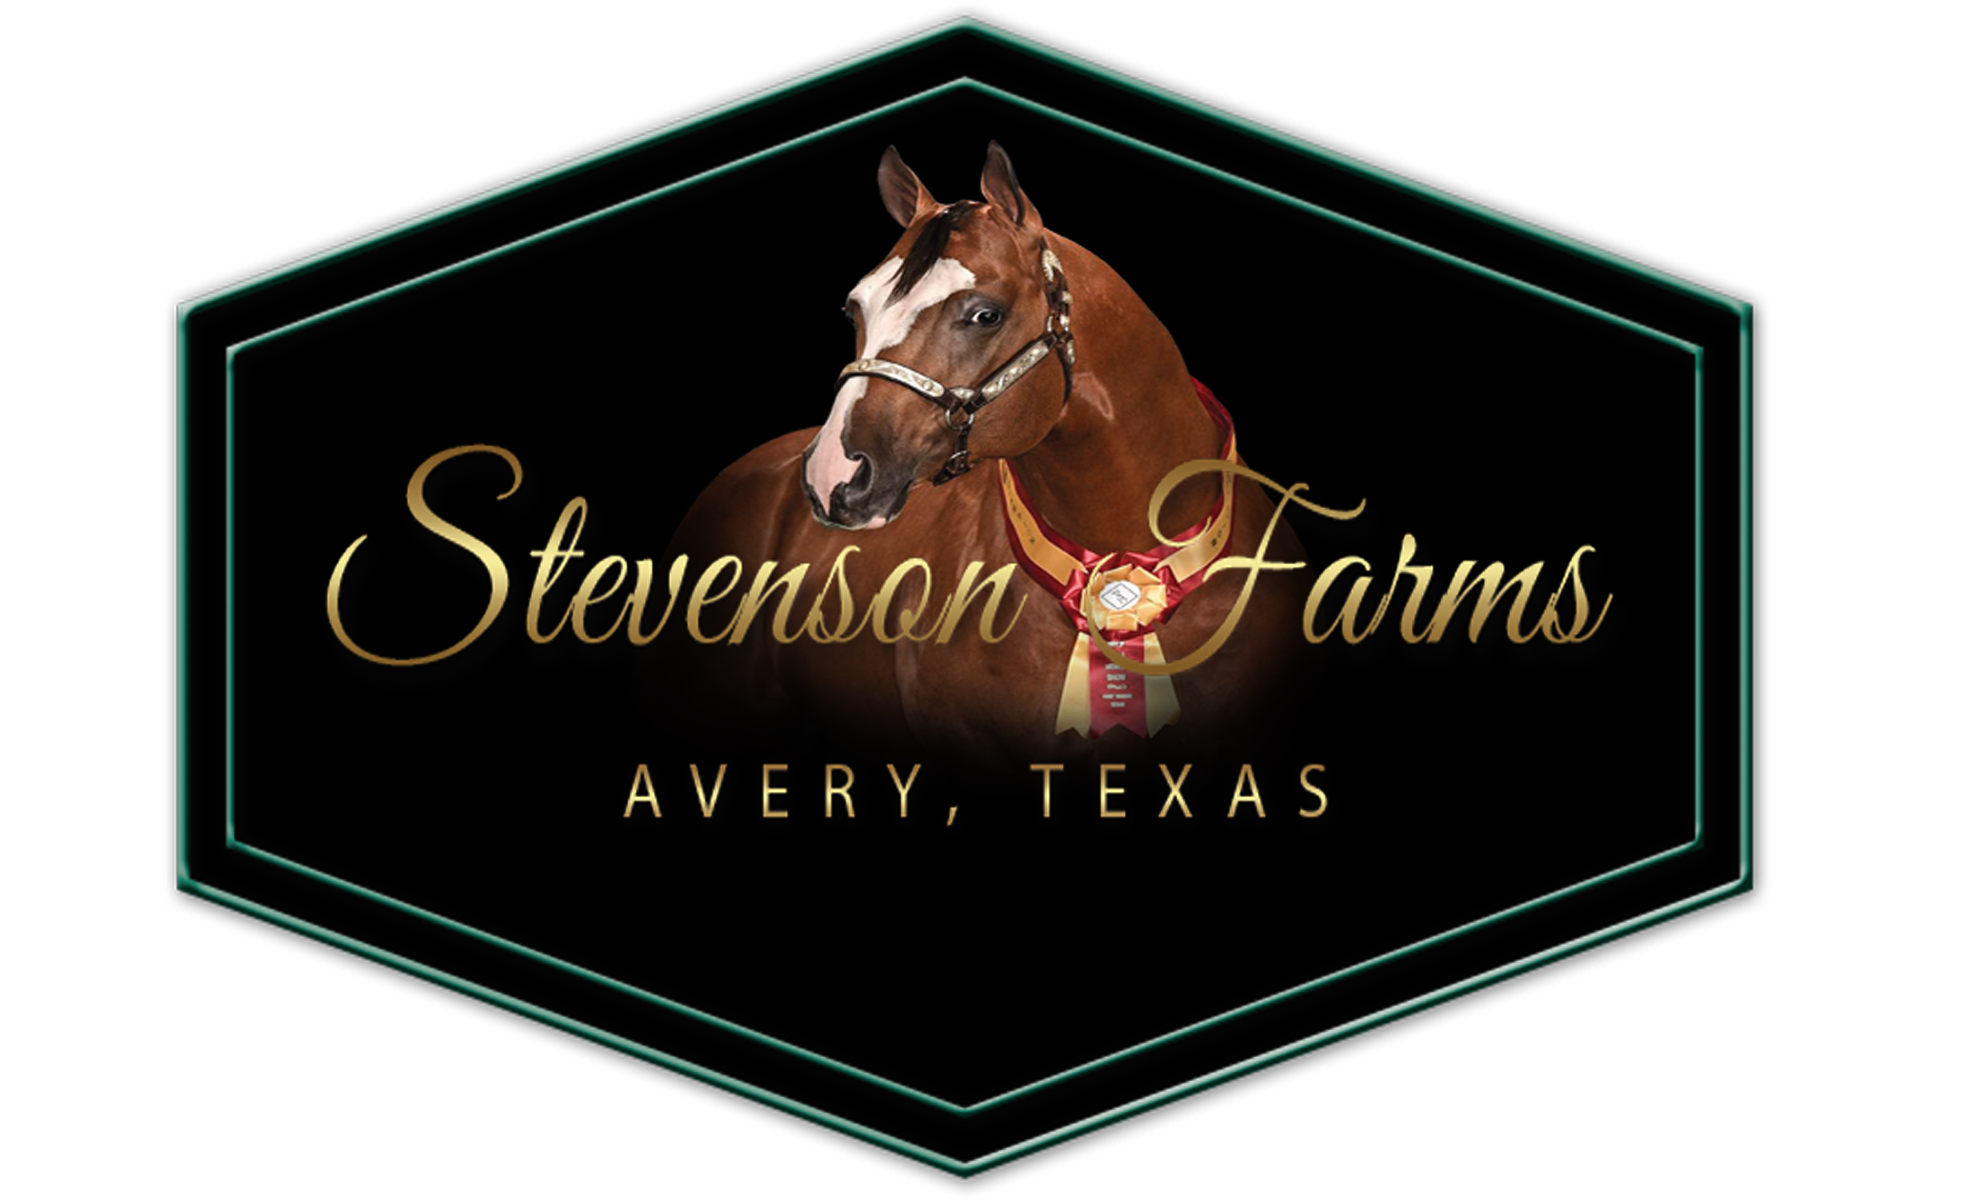 STEVENSON FARMS LOGO